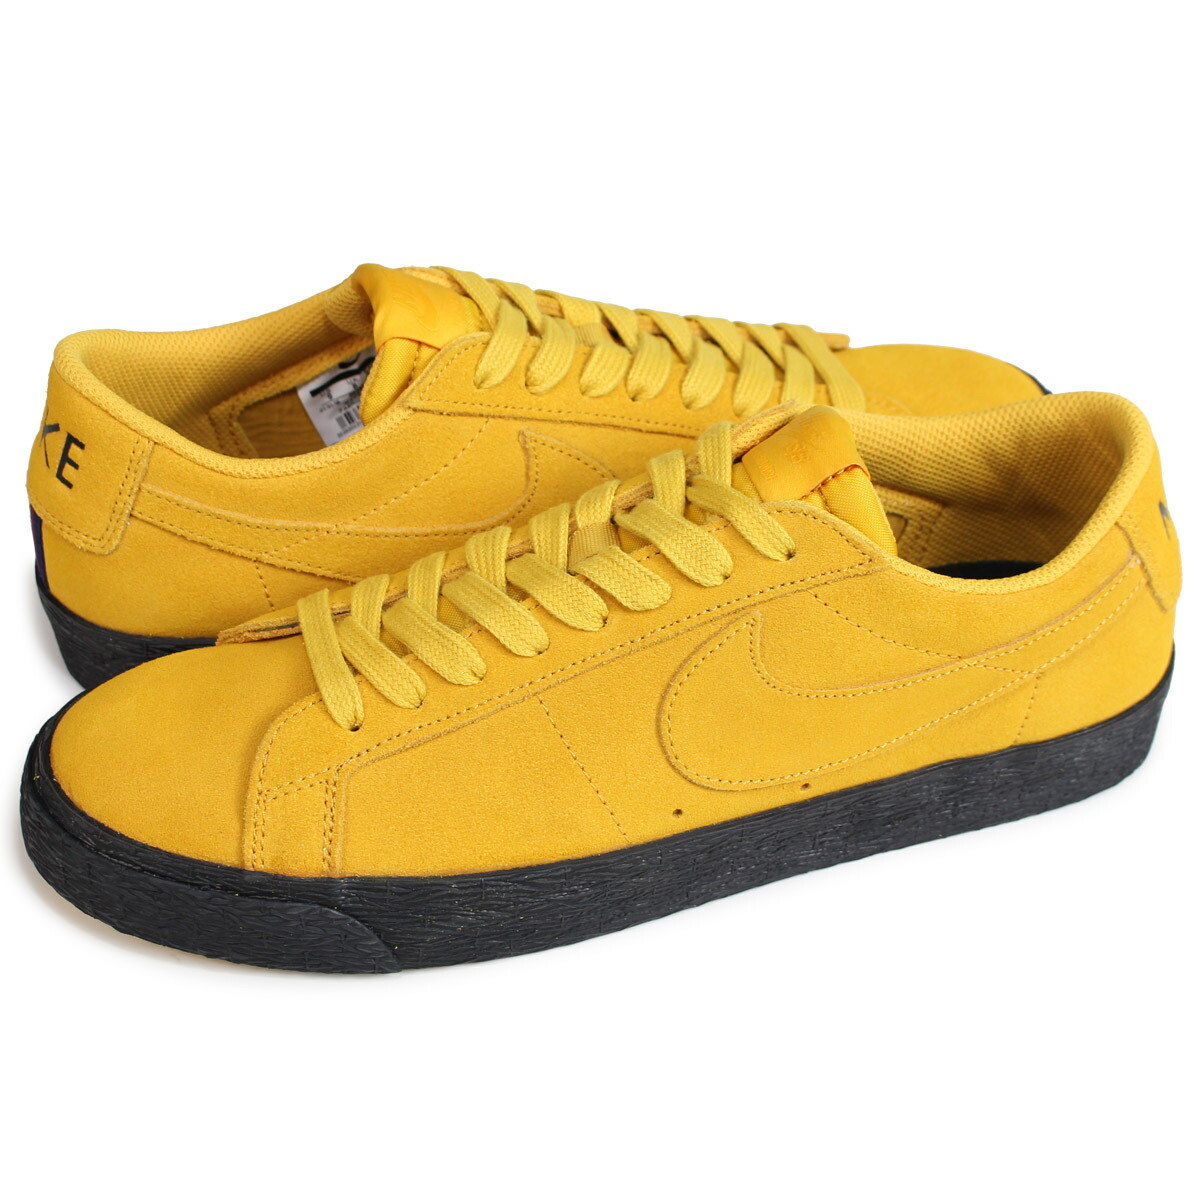 cff0b5a51e63 Whats up Sports  NIKE SB ZOOM BLAZER LOW Nike blazer low sneakers ...